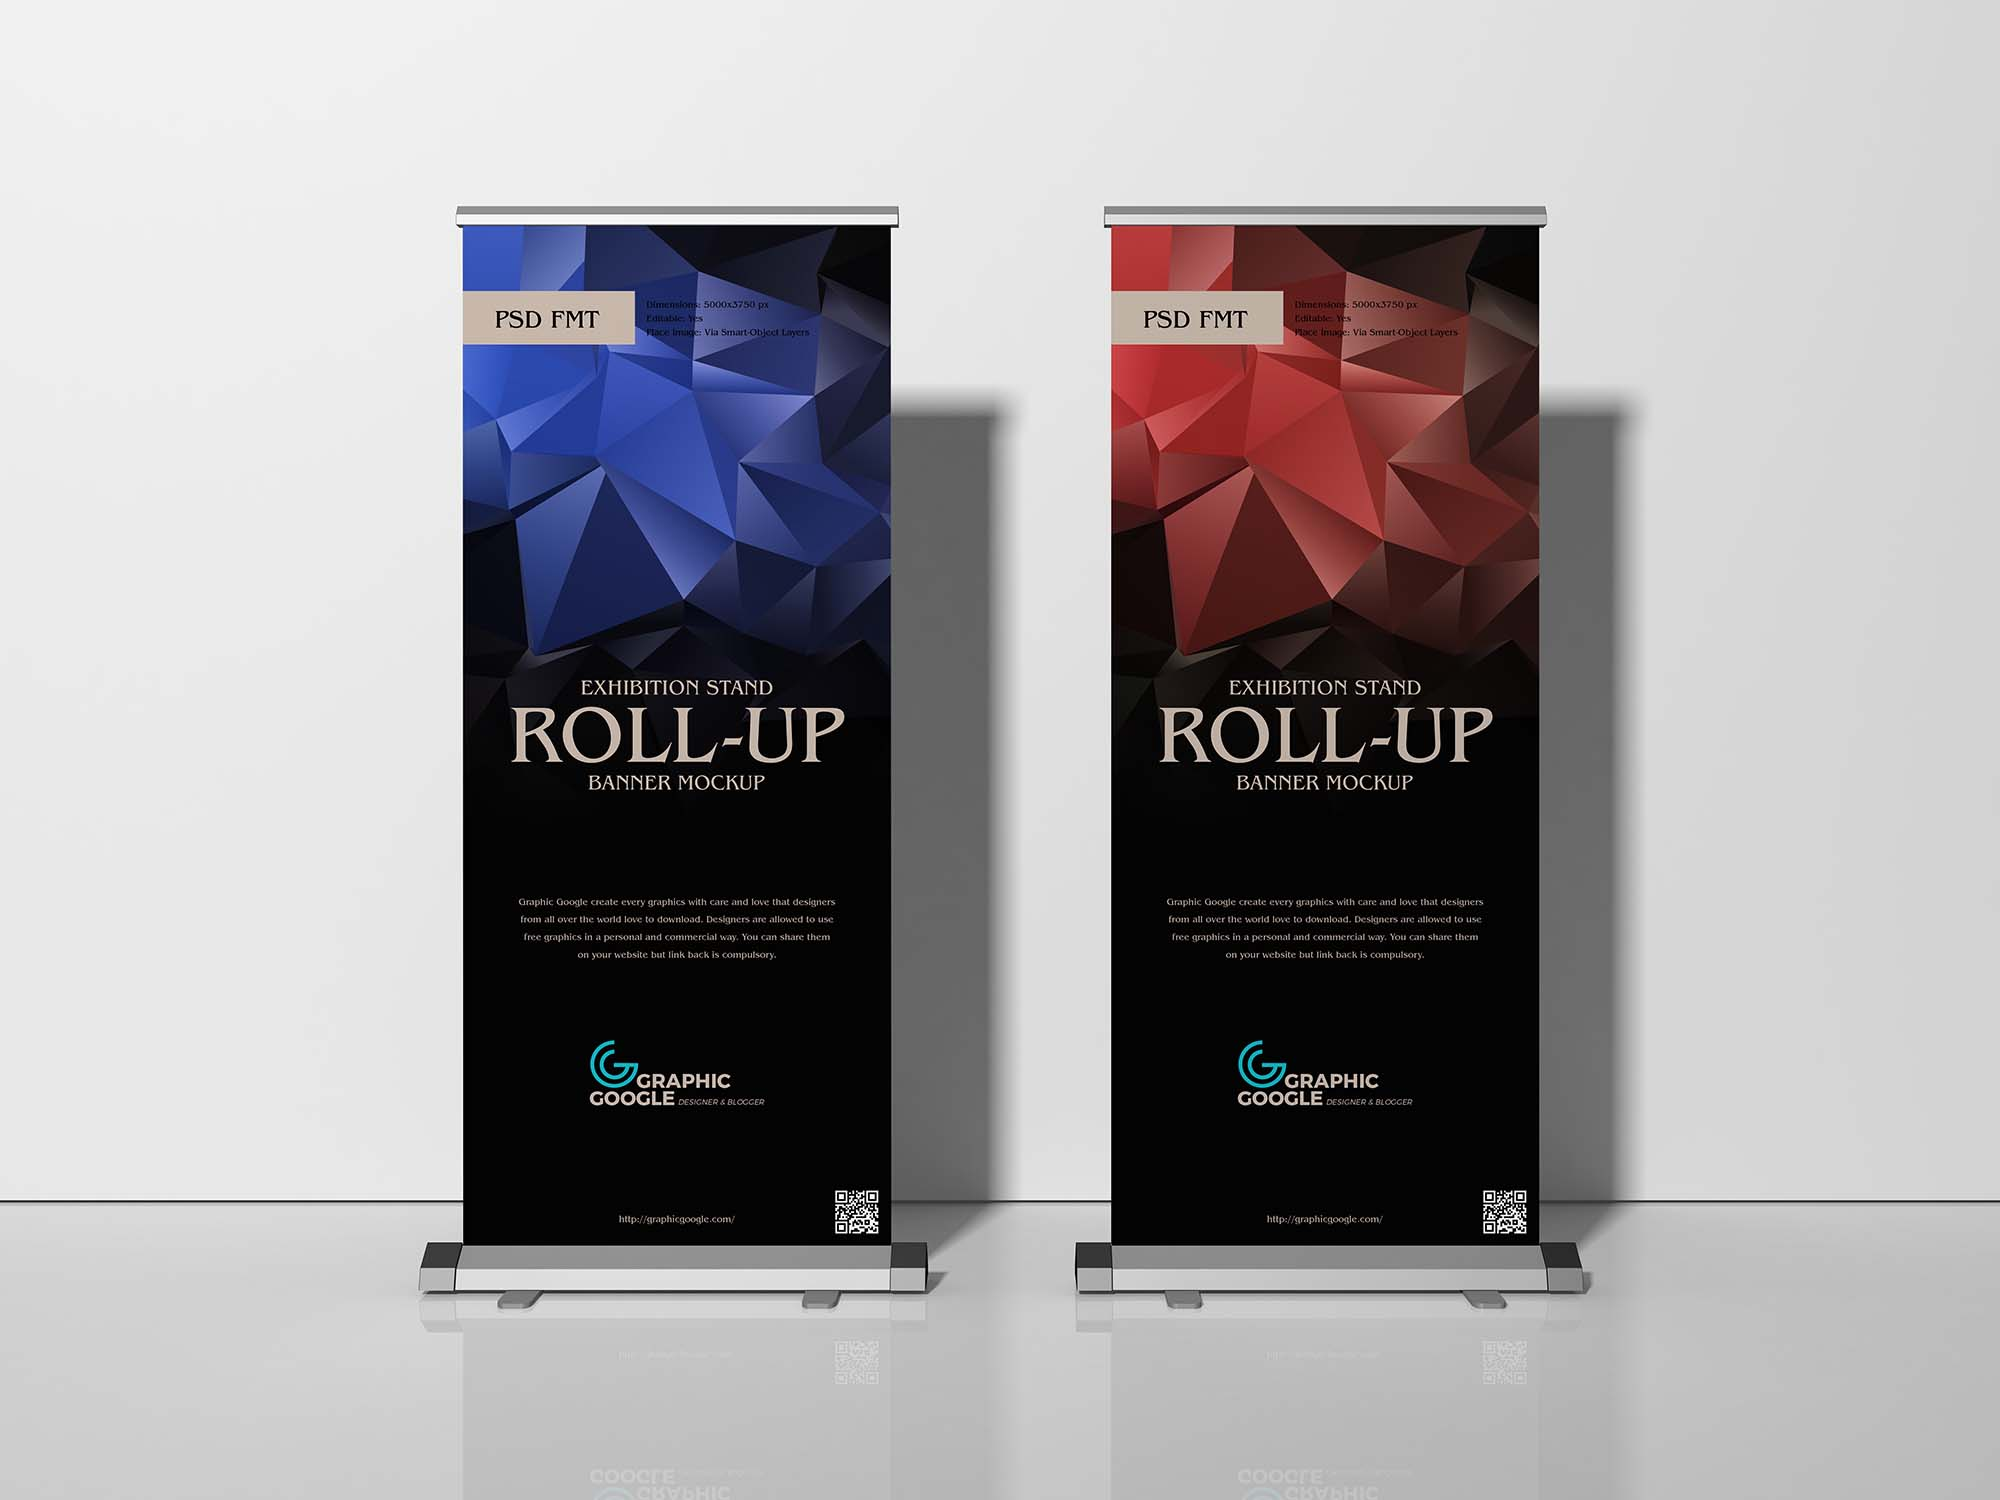 Free Exhibition Stand Roll-Up Banner Mockup 01